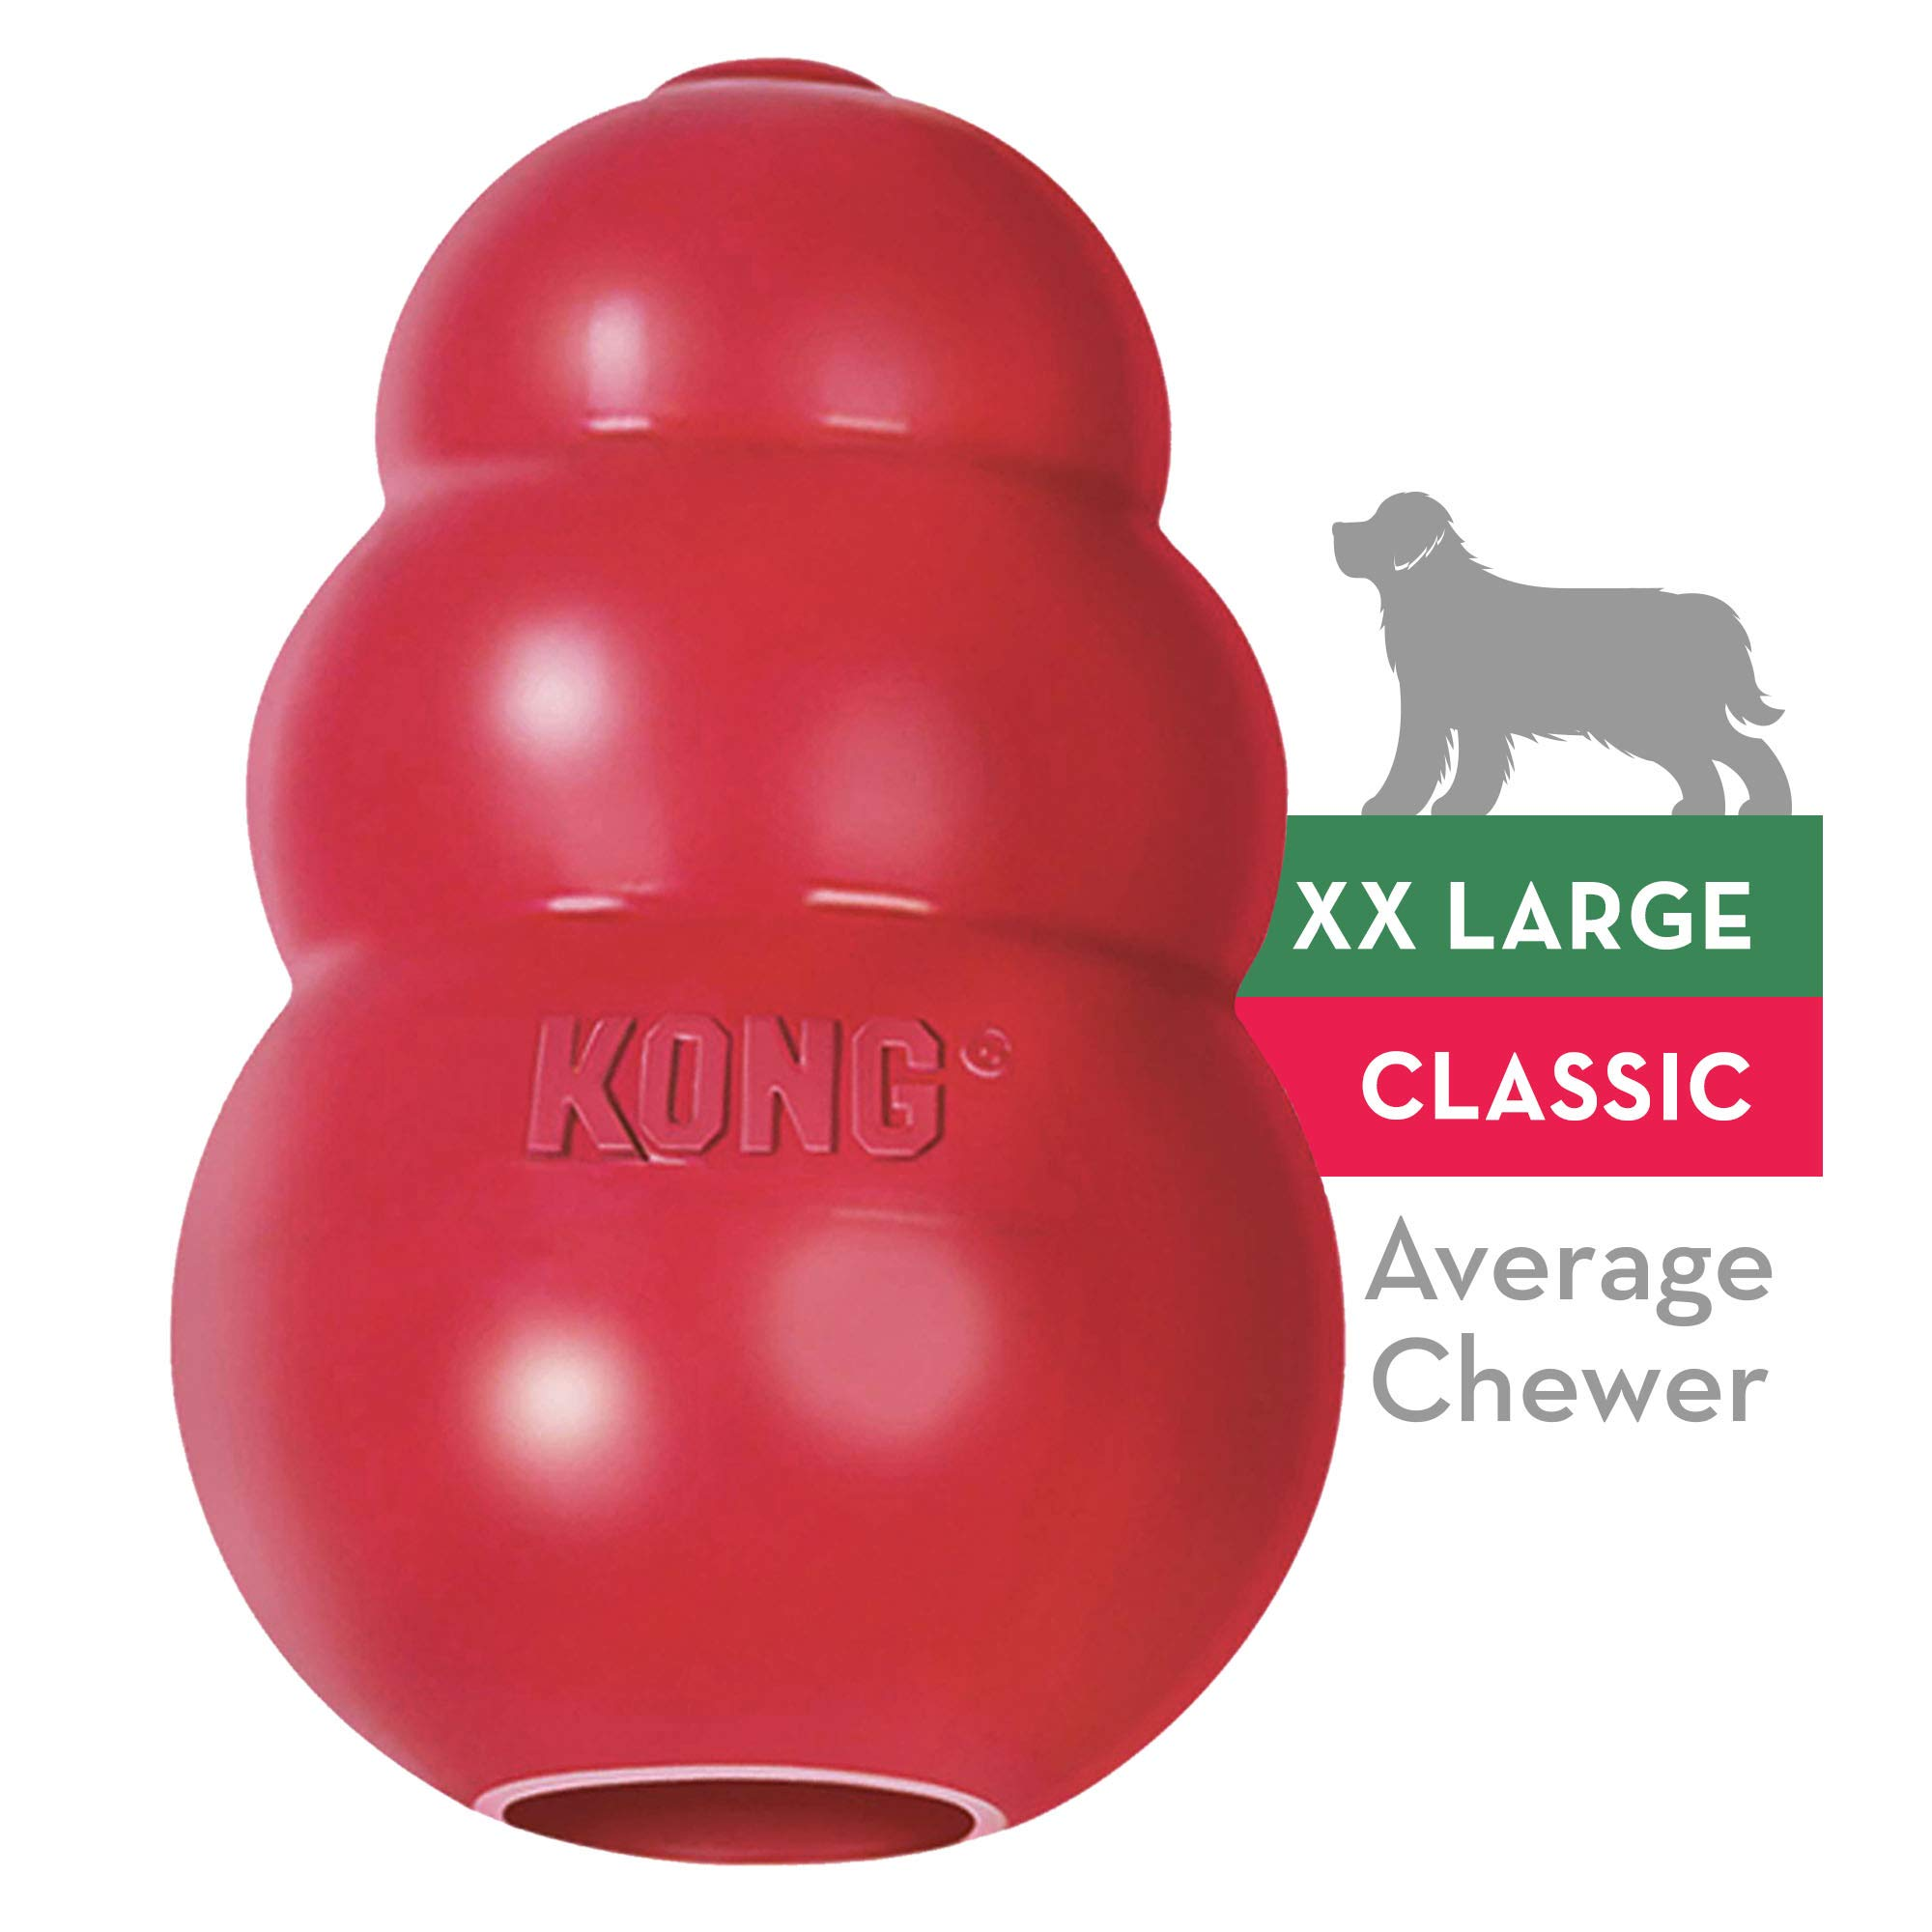 KONG - Classic Dog Toy - Durable Natural Rubber - Fun to Chew, Chase and Fetch - for XXL Dogs by KONG